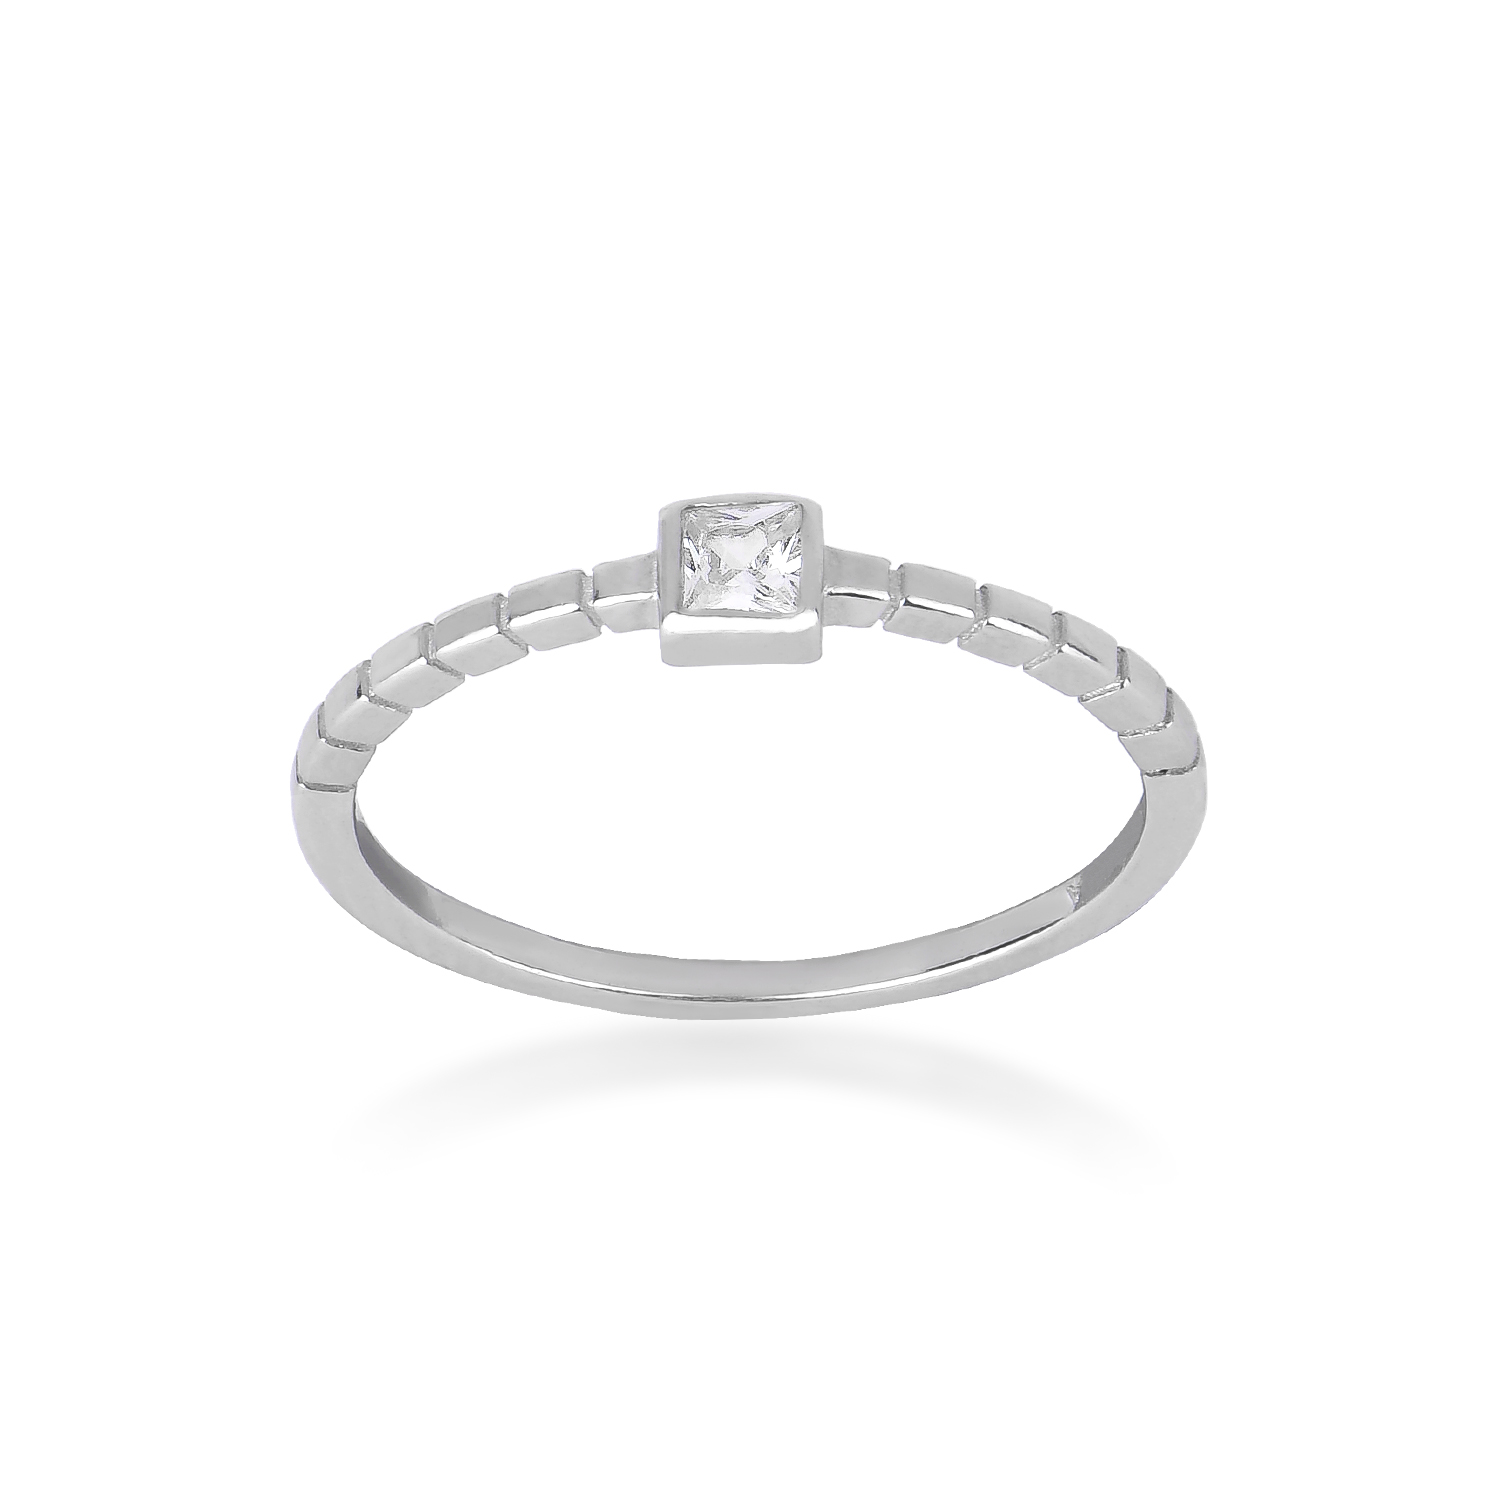 cosar-silver-925-sterling-silver-ring-with-one-stone